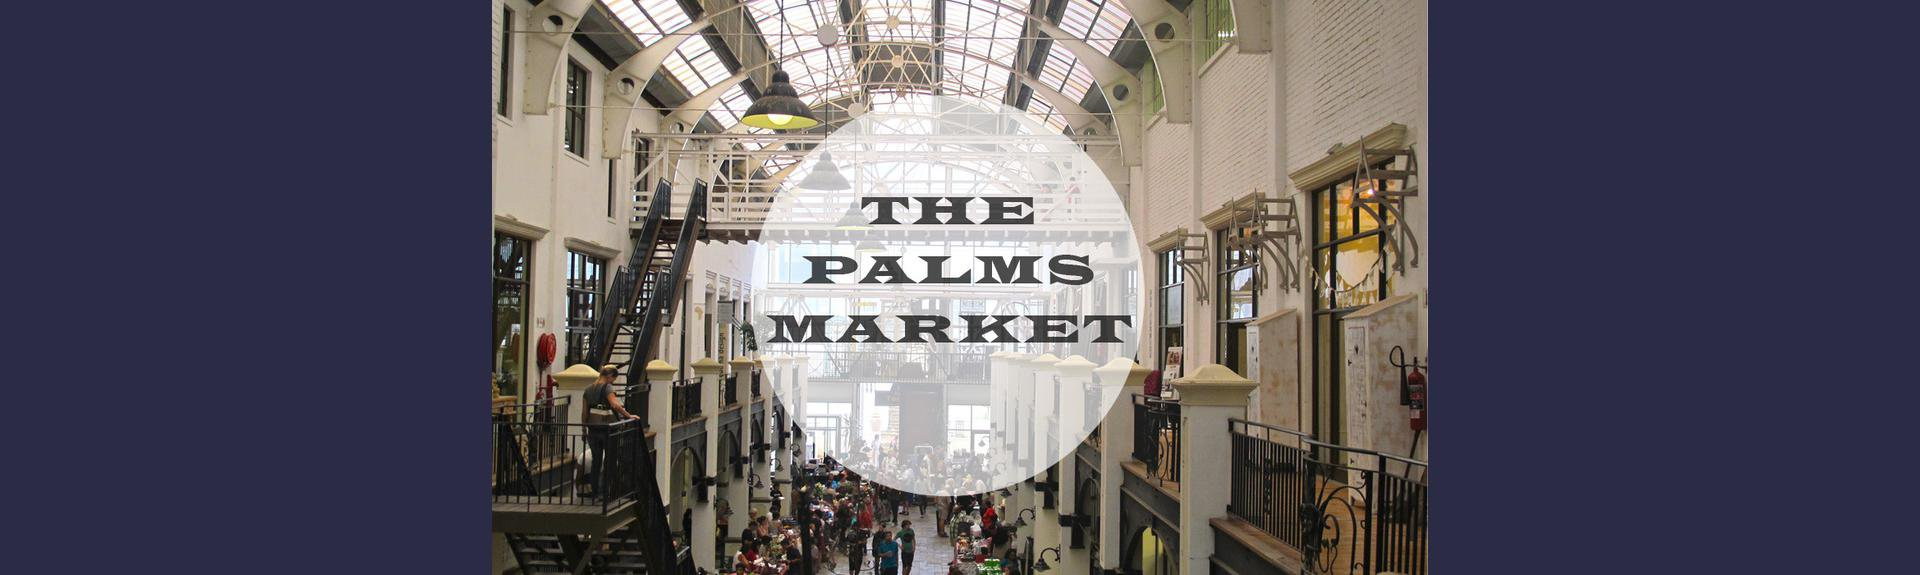 the palms market platteland market